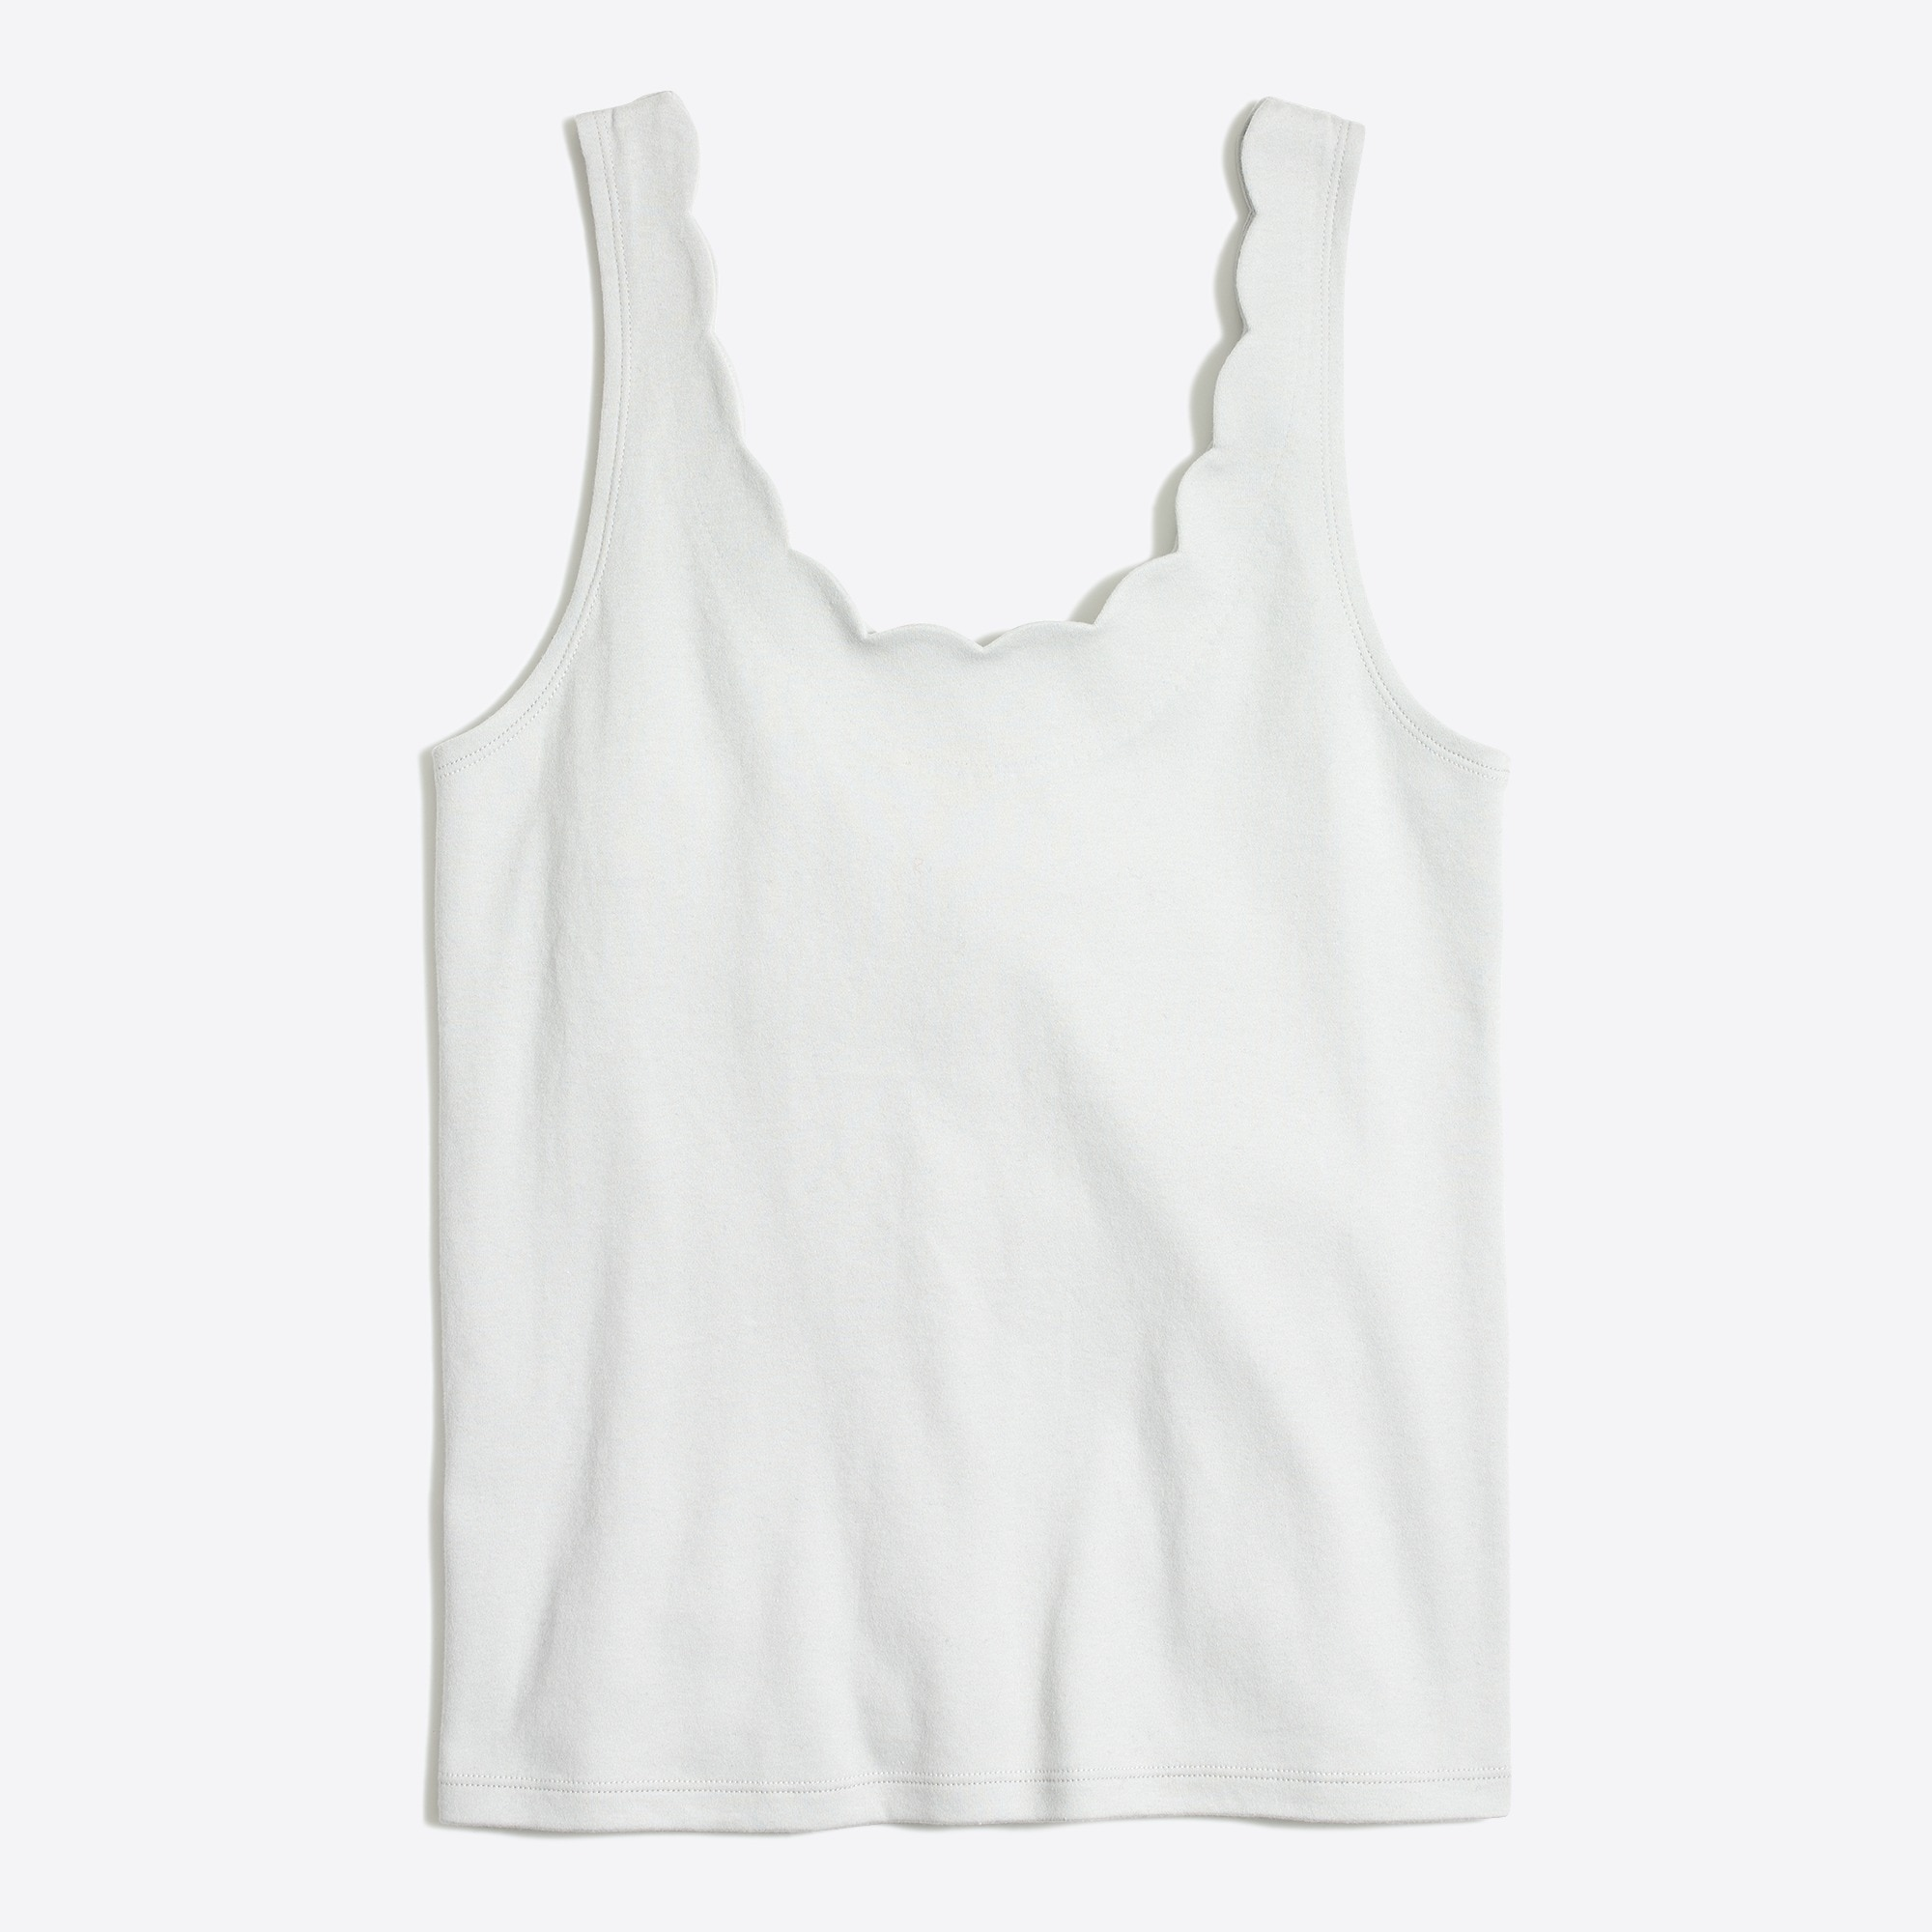 Scalloped tank tops factorywomen new arrivals c